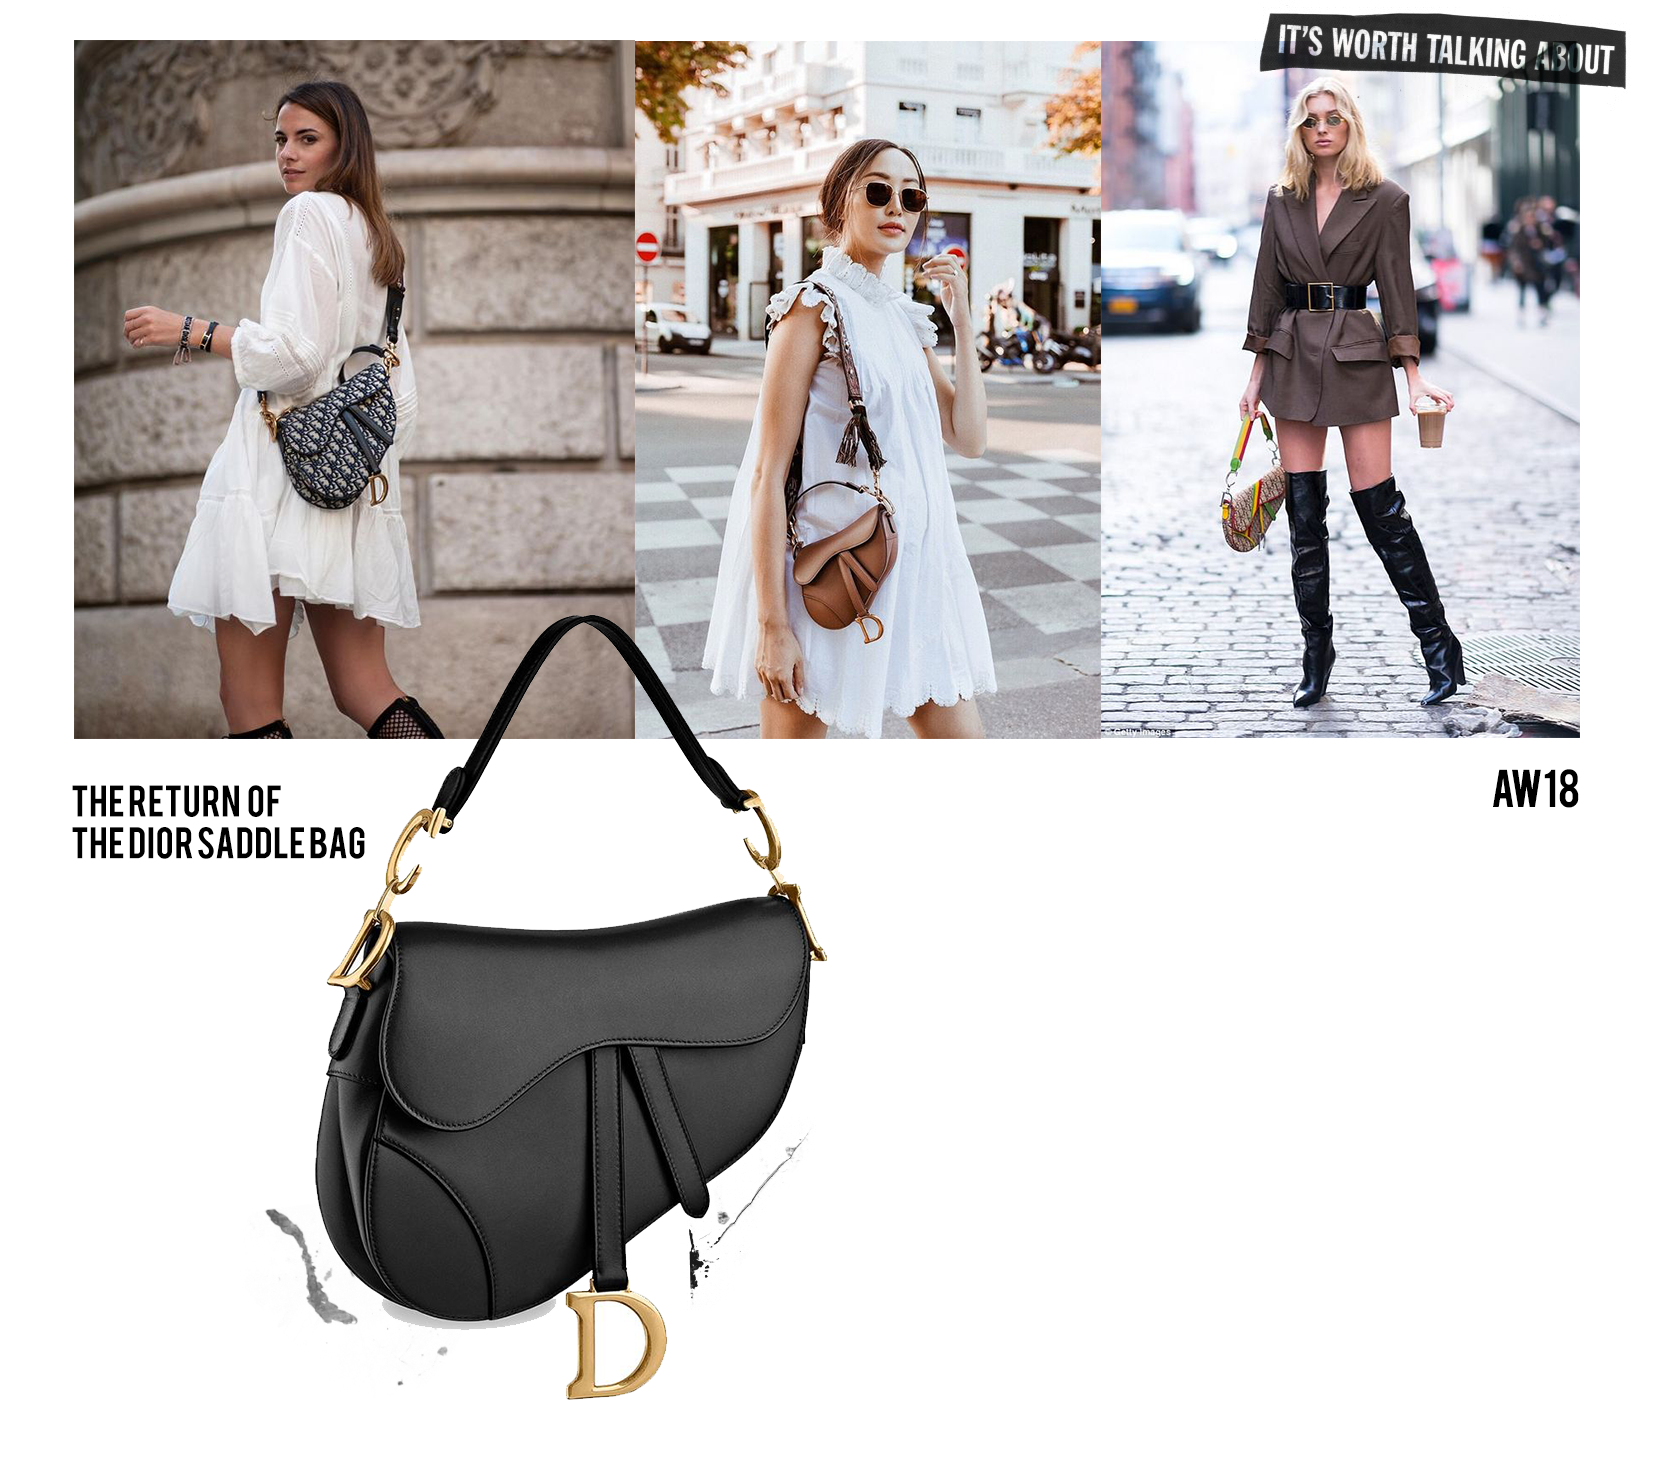 Dior saddle bag worn by bloggers in 2018